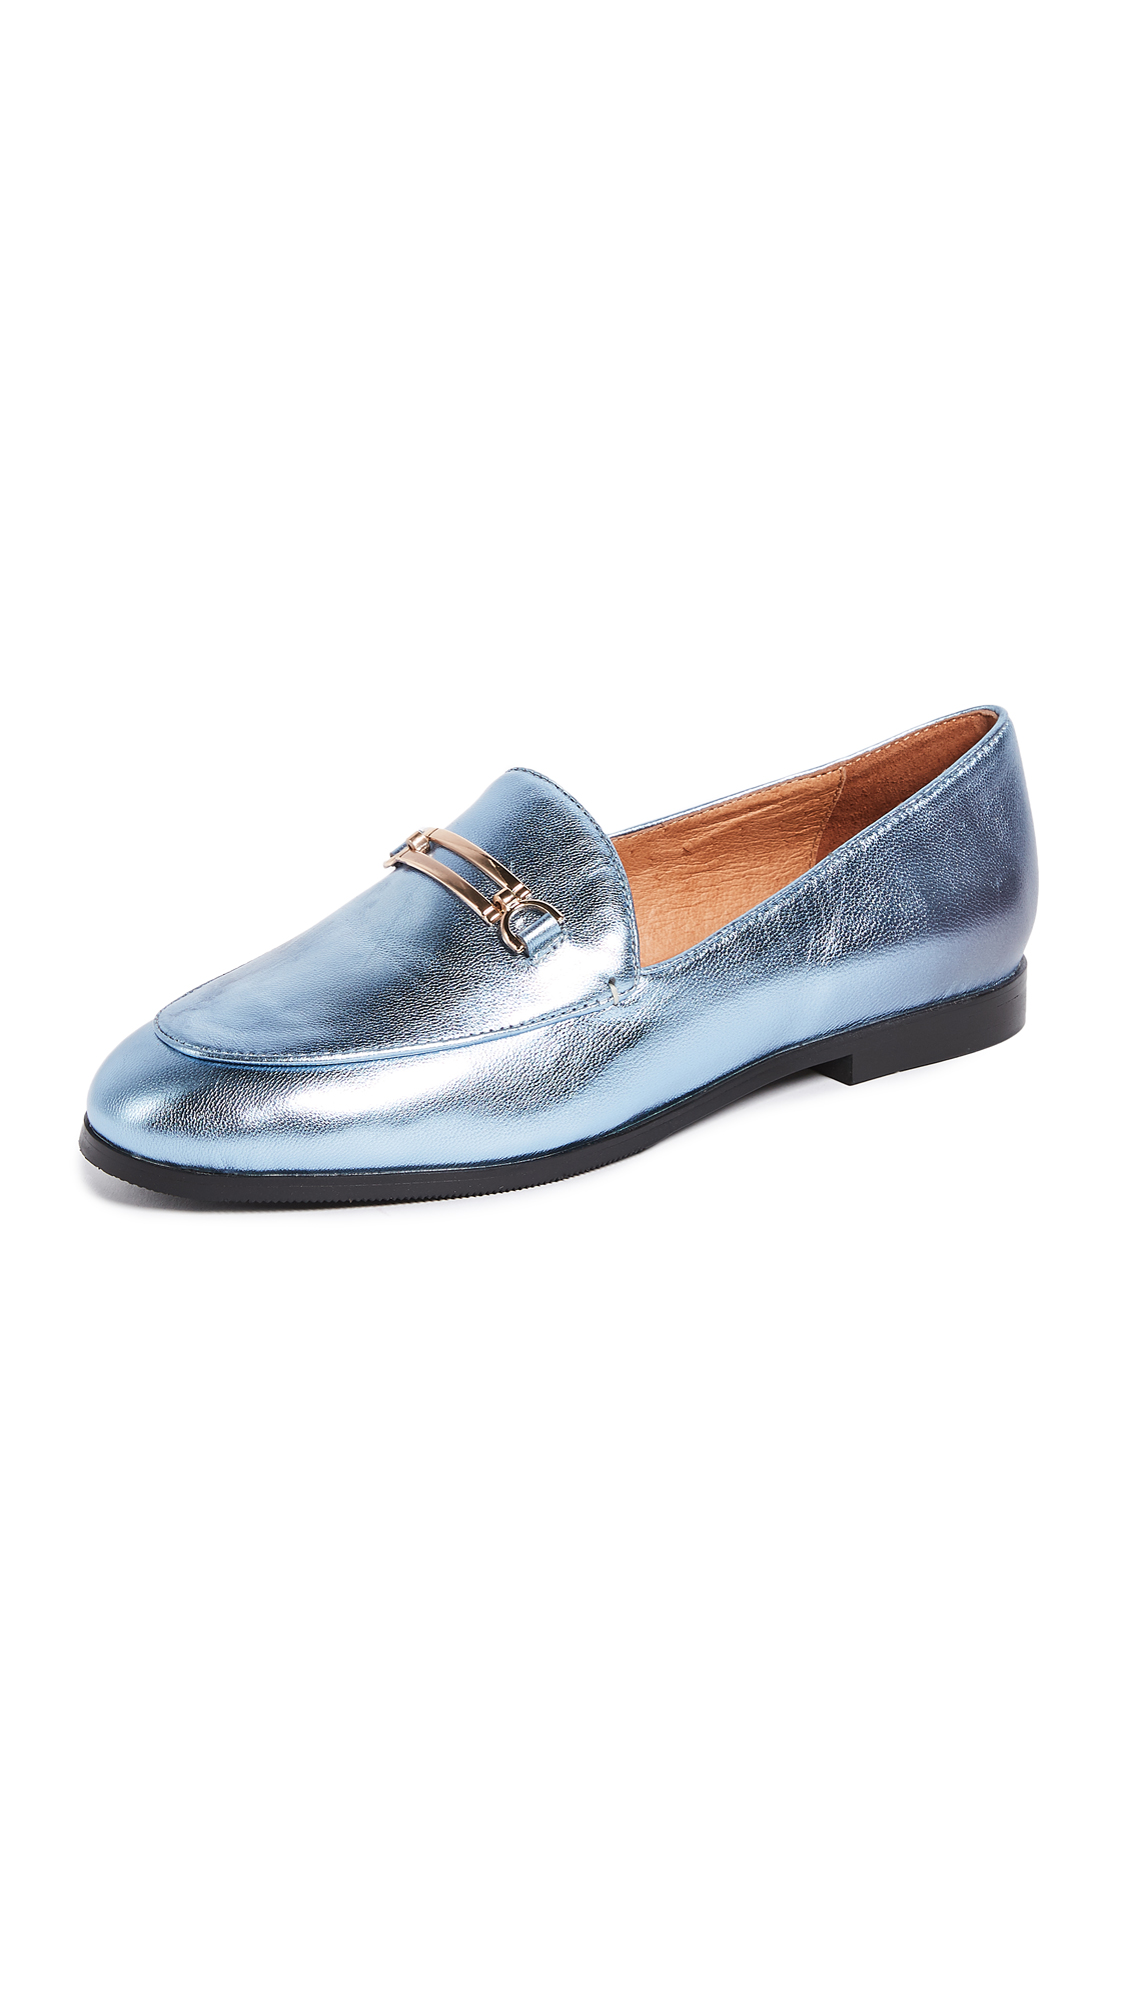 Matiko Leslie Metallic Loafers - Grey